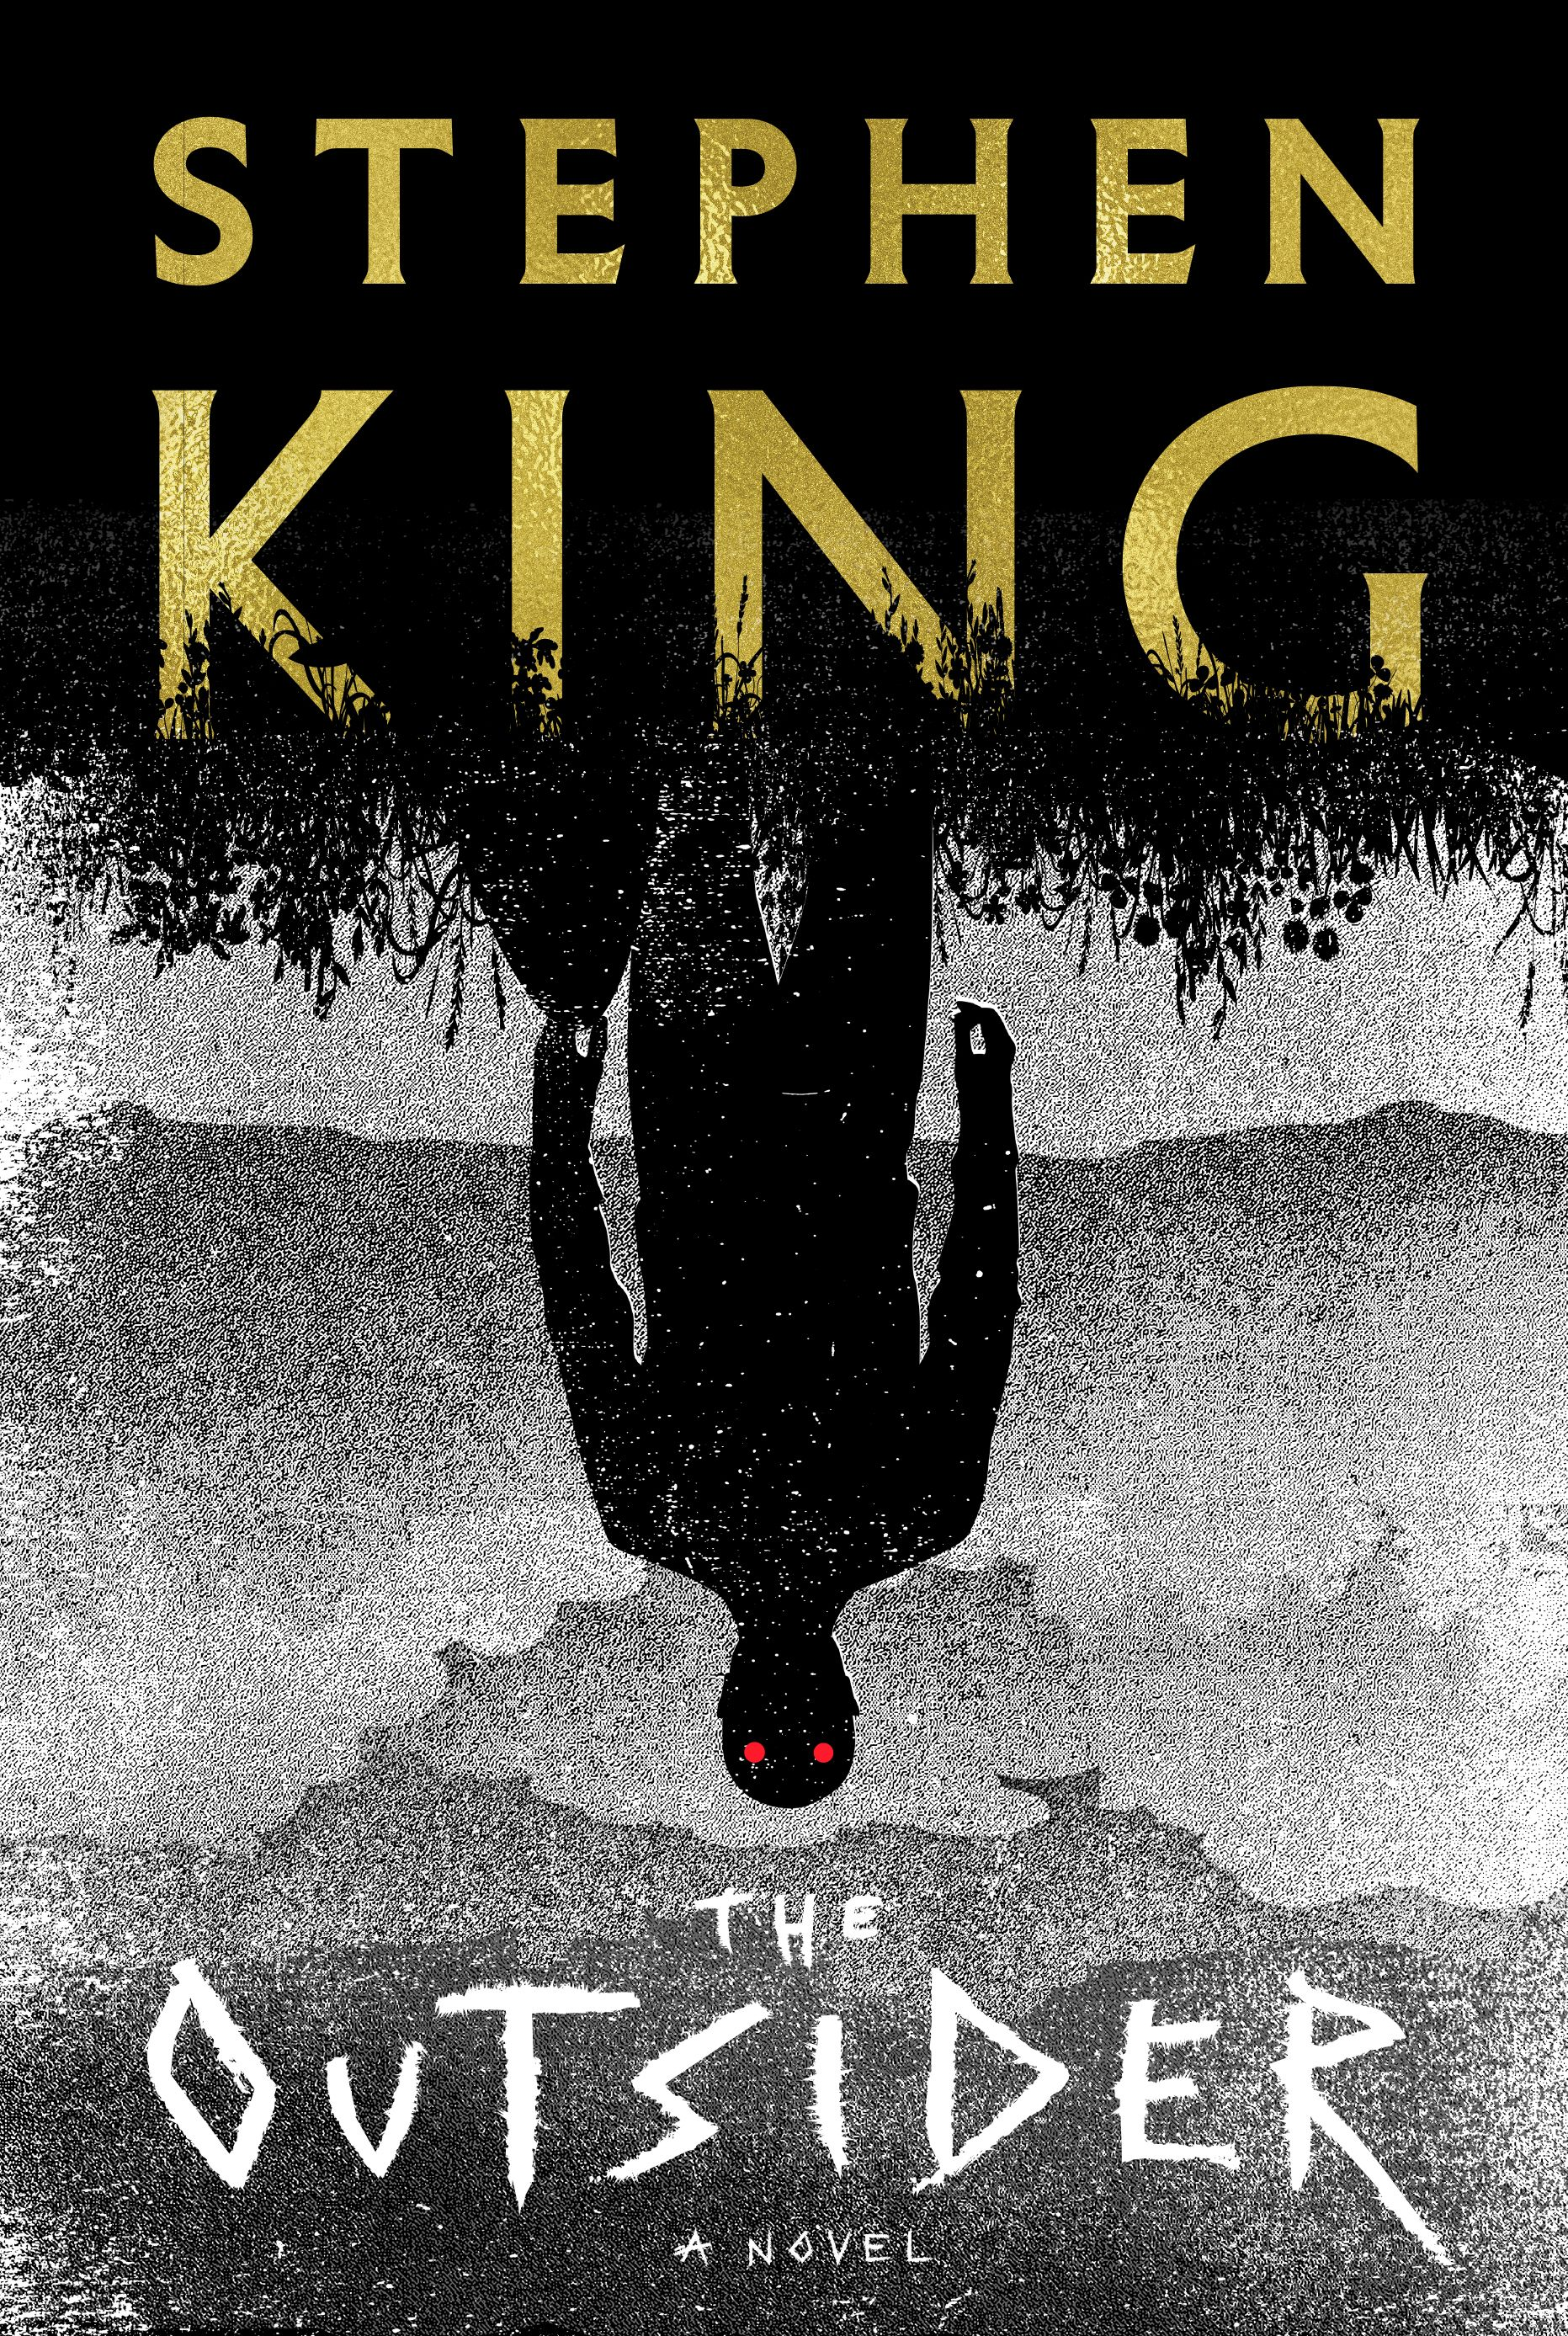 Friday Reads: The Outsider by Stephen King